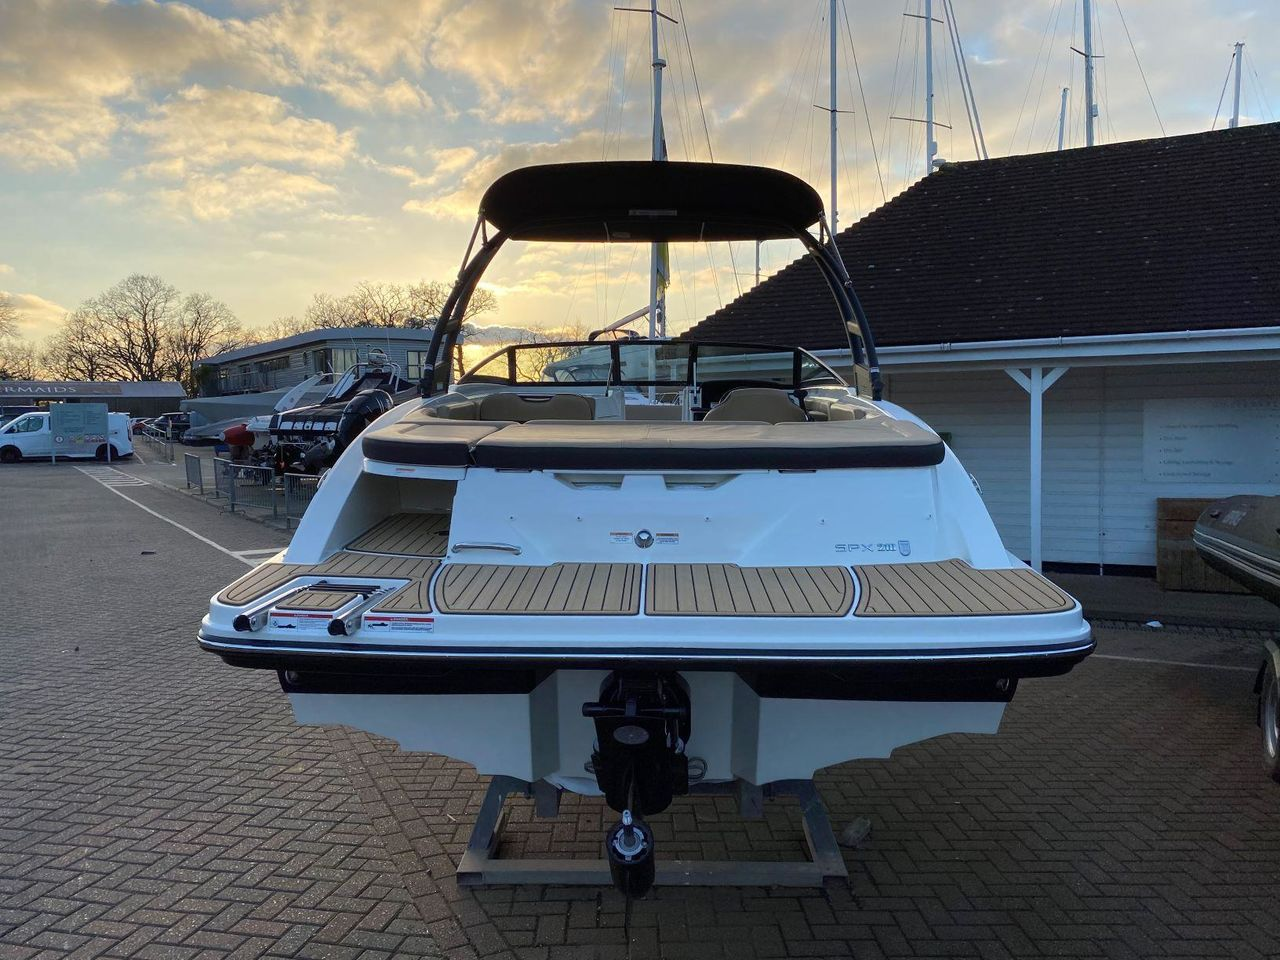 Sea Ray 210 SPXE Wakeedition - billede 3